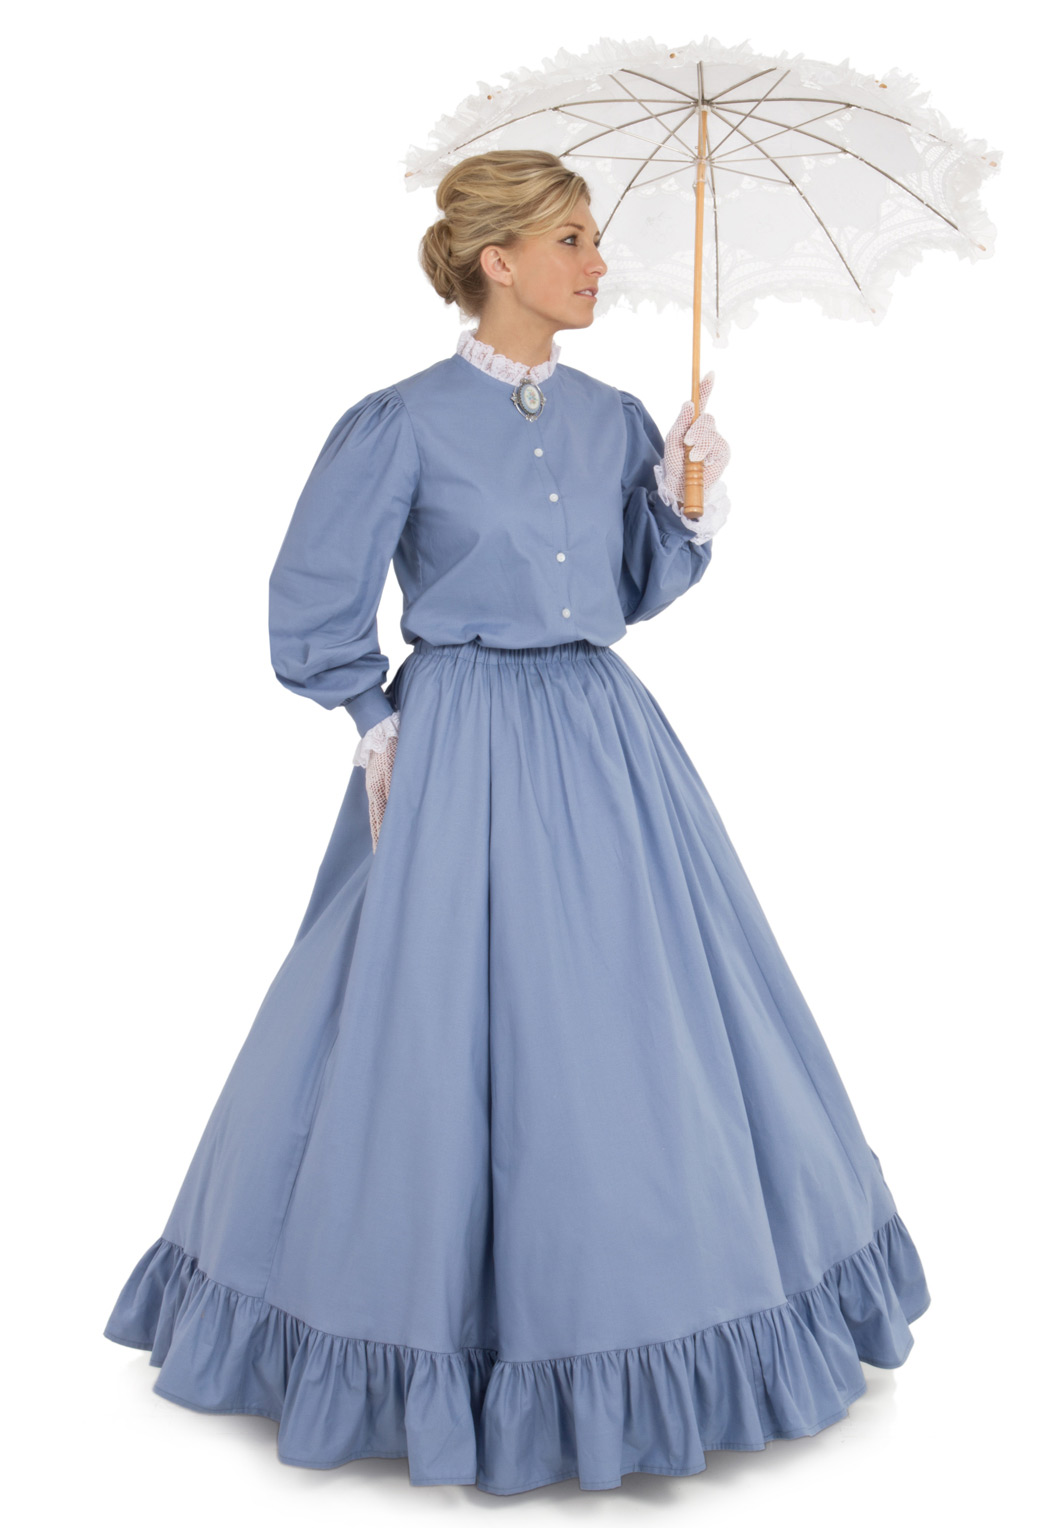 pioneer woman clothing. blouse and skirt pioneer woman clothing n